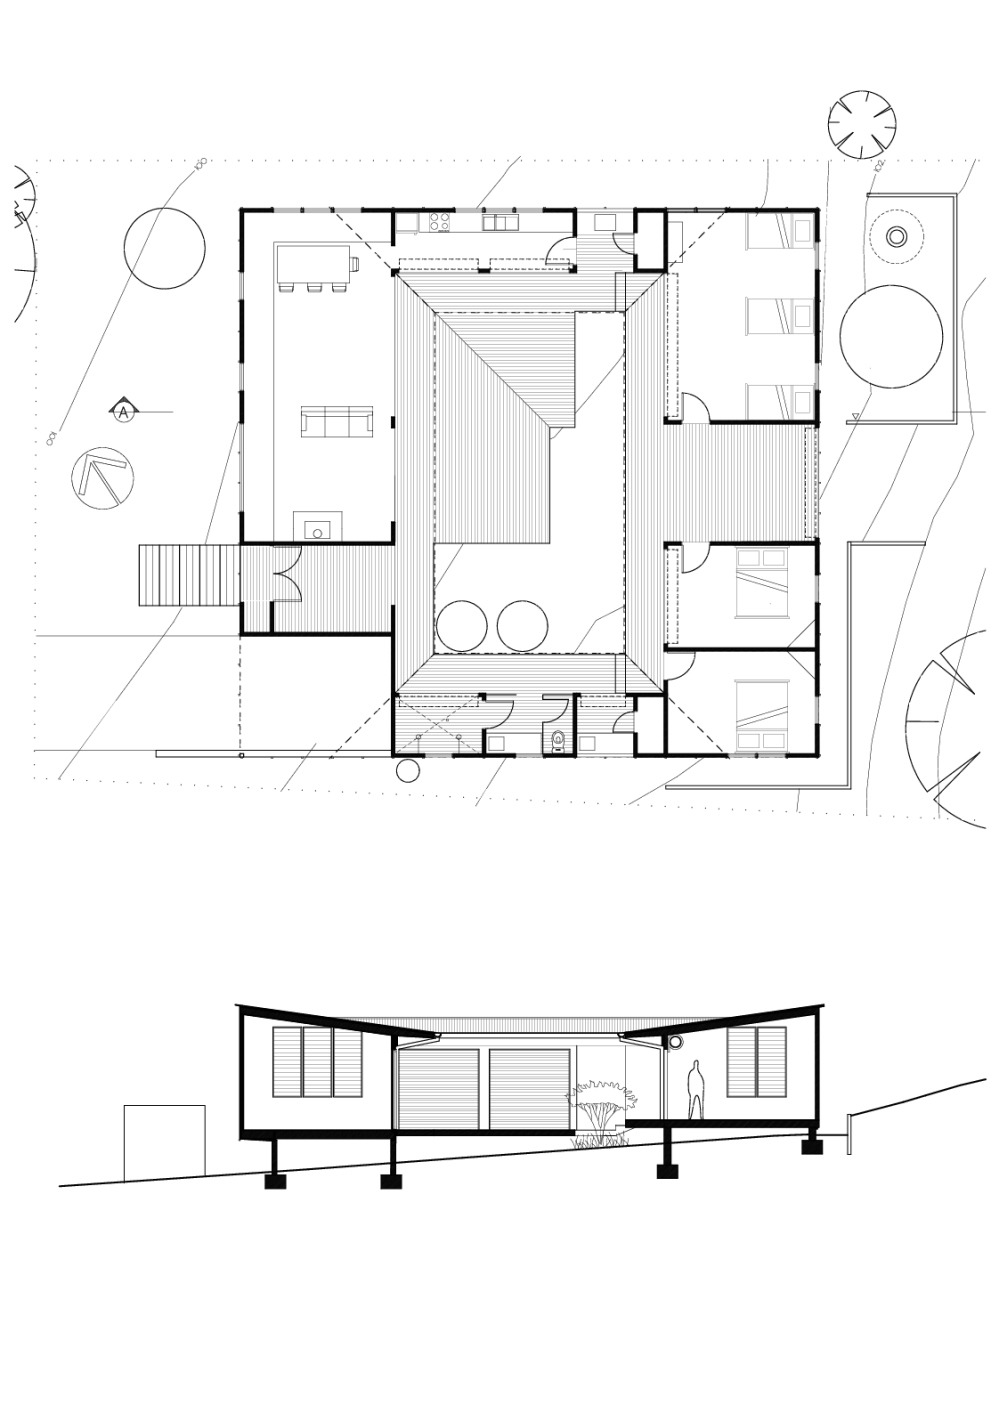 Houses with Courtyards Design Plans Beautiful Design Inspiration the Modern Courtyard House Studio Mm